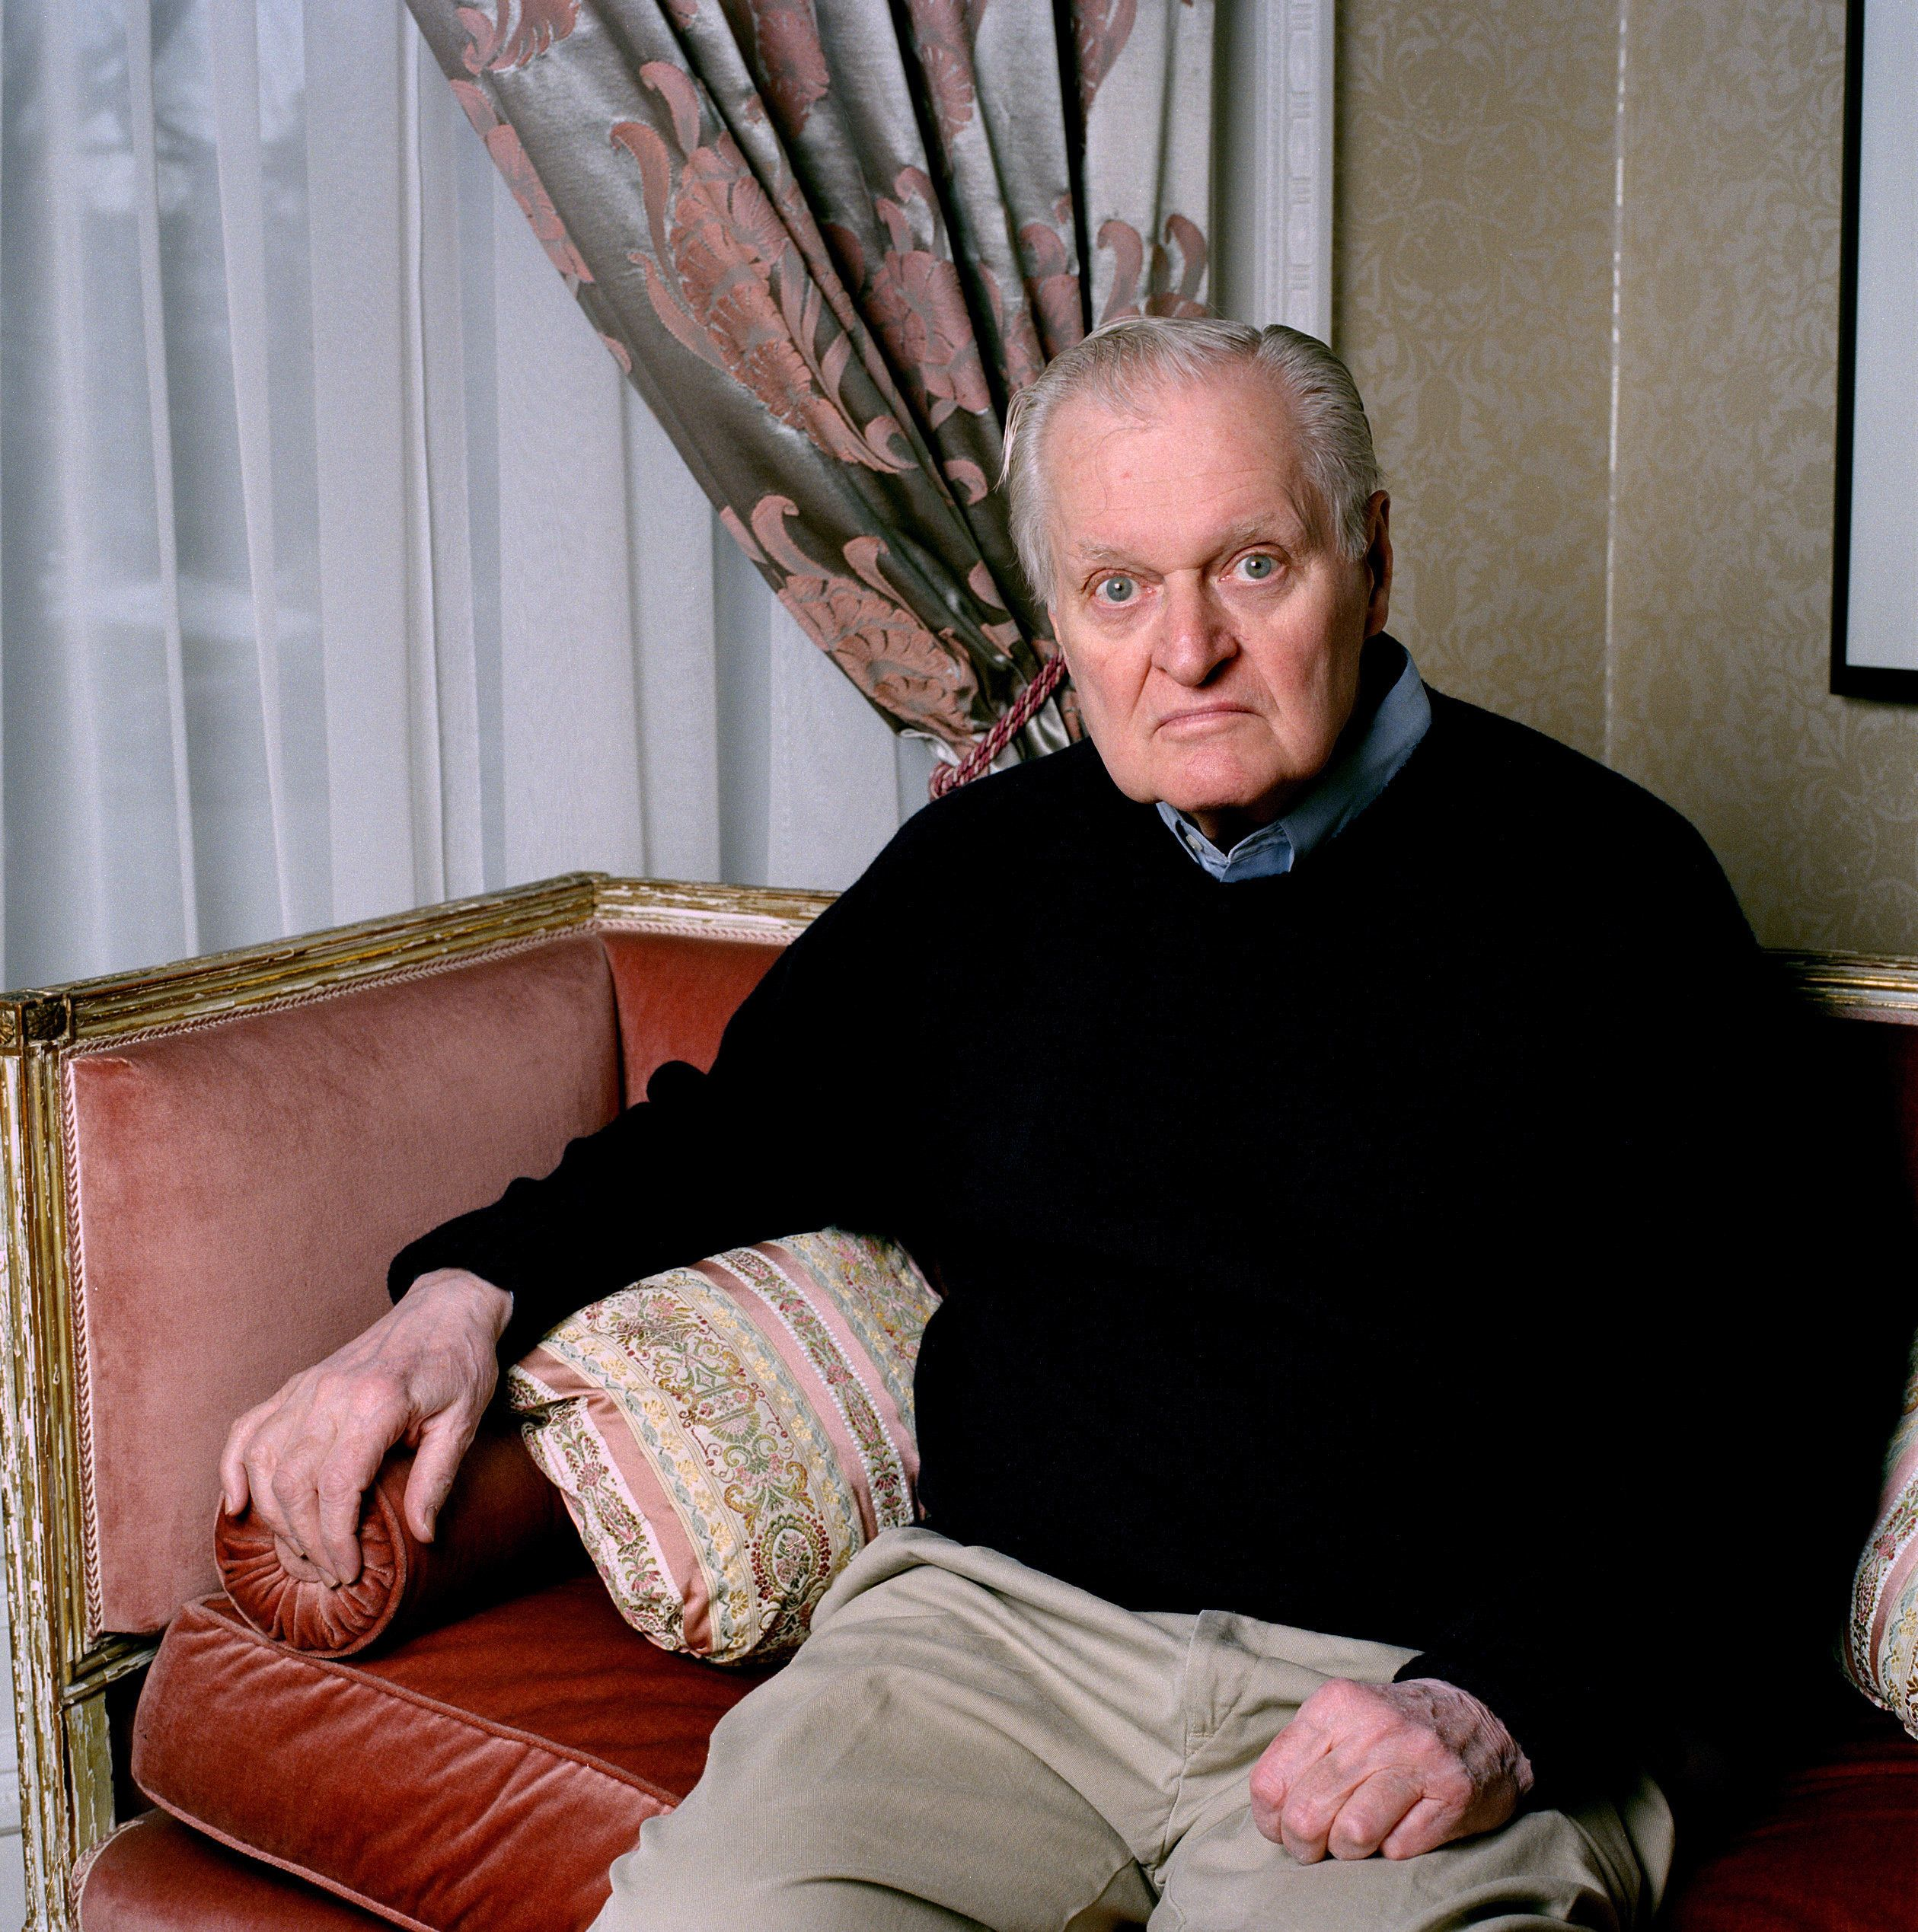 Portrait of John Ashbery (1927 - 2017), American Pulitzer Prize-winning poet, at home in Hudson, New York, 2010. (Photo By Eamonn McCabe/Getty Images)